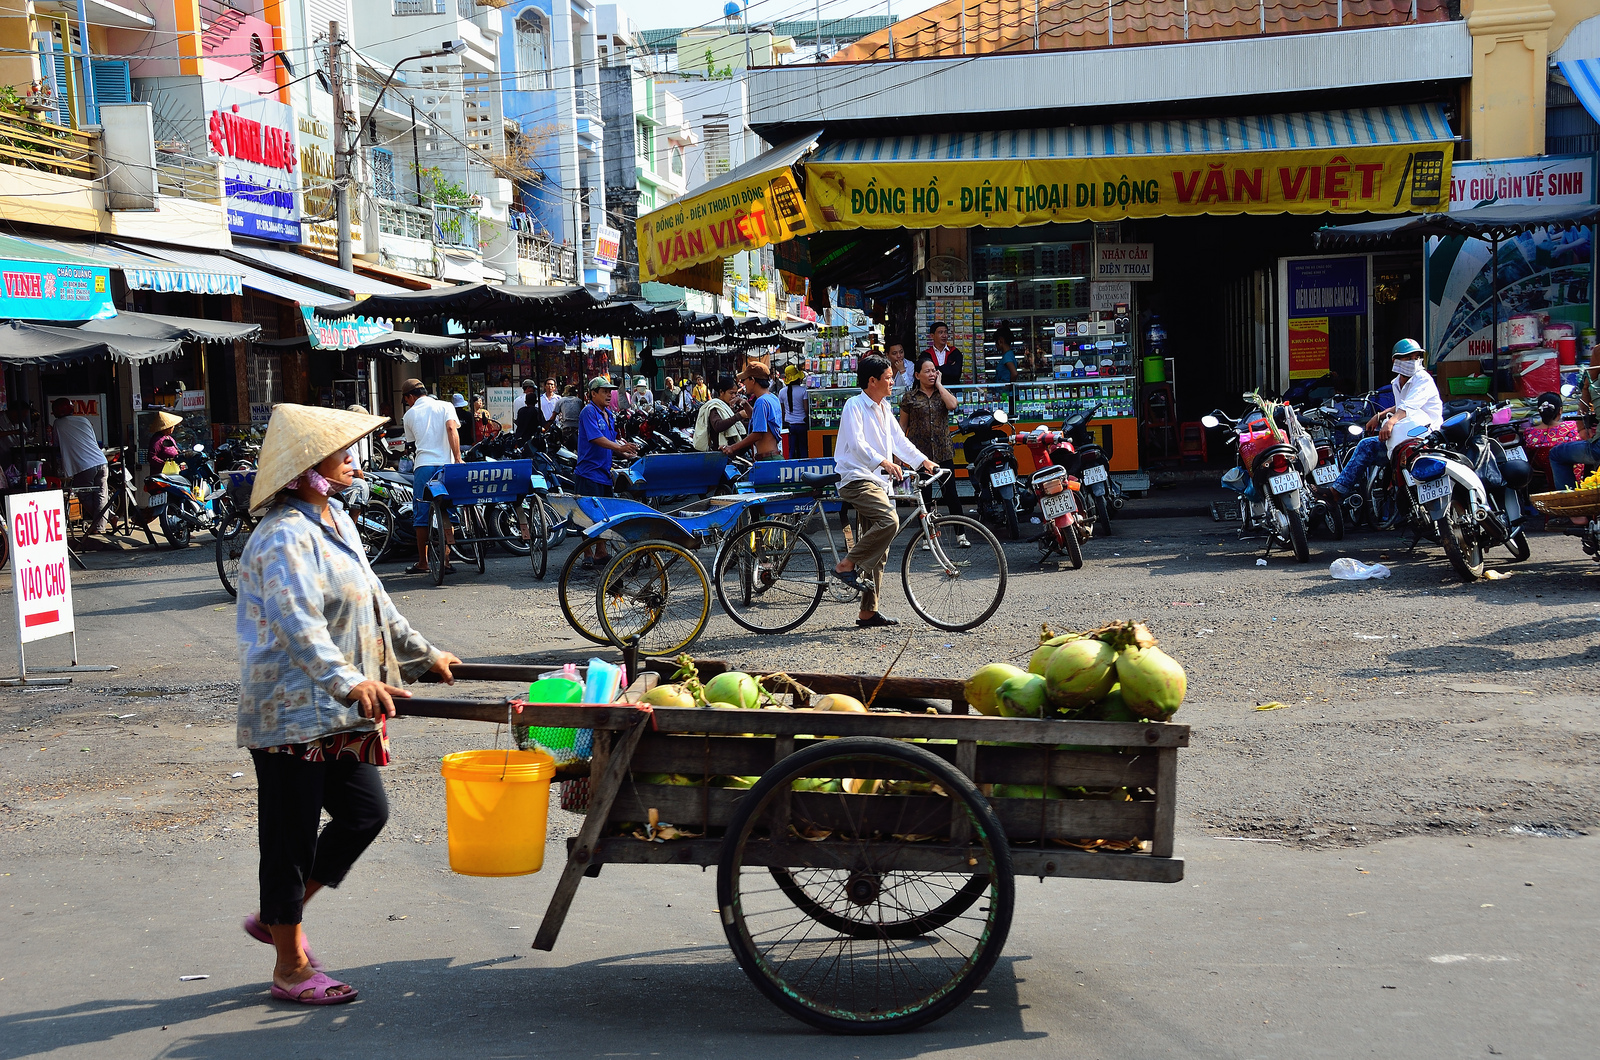 Daily life pictures in Chau Doc